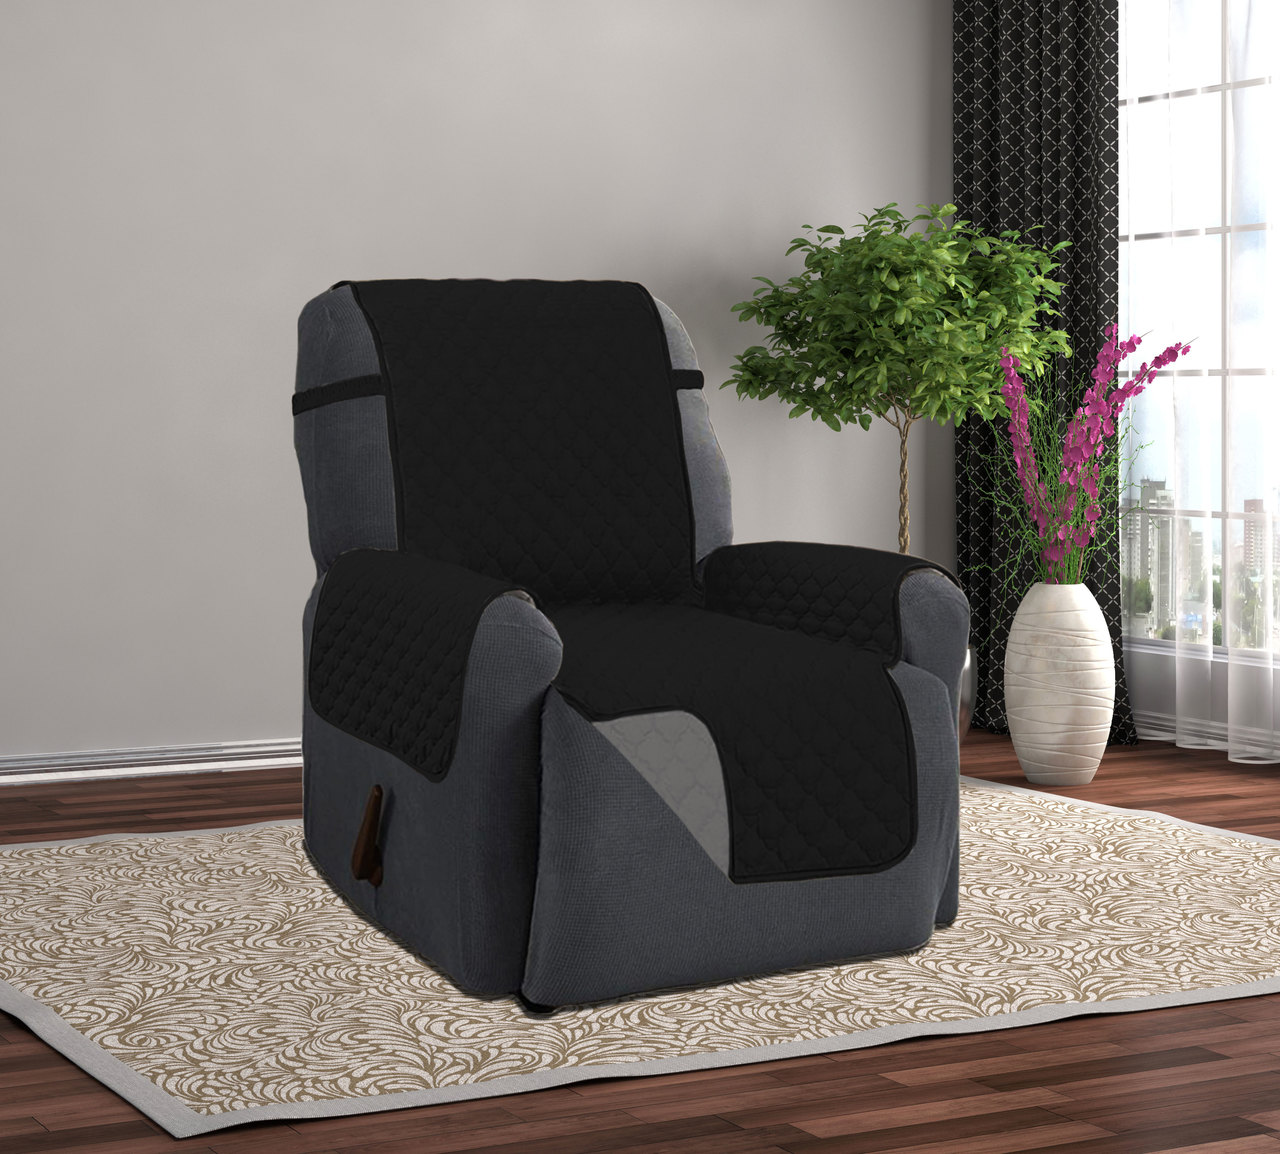 Linen Store Quilted Reversible Microfiber Pet Dog Couch Furniture Protector Recliner Cover (Black / Gray & Pet Furniture Covers islam-shia.org